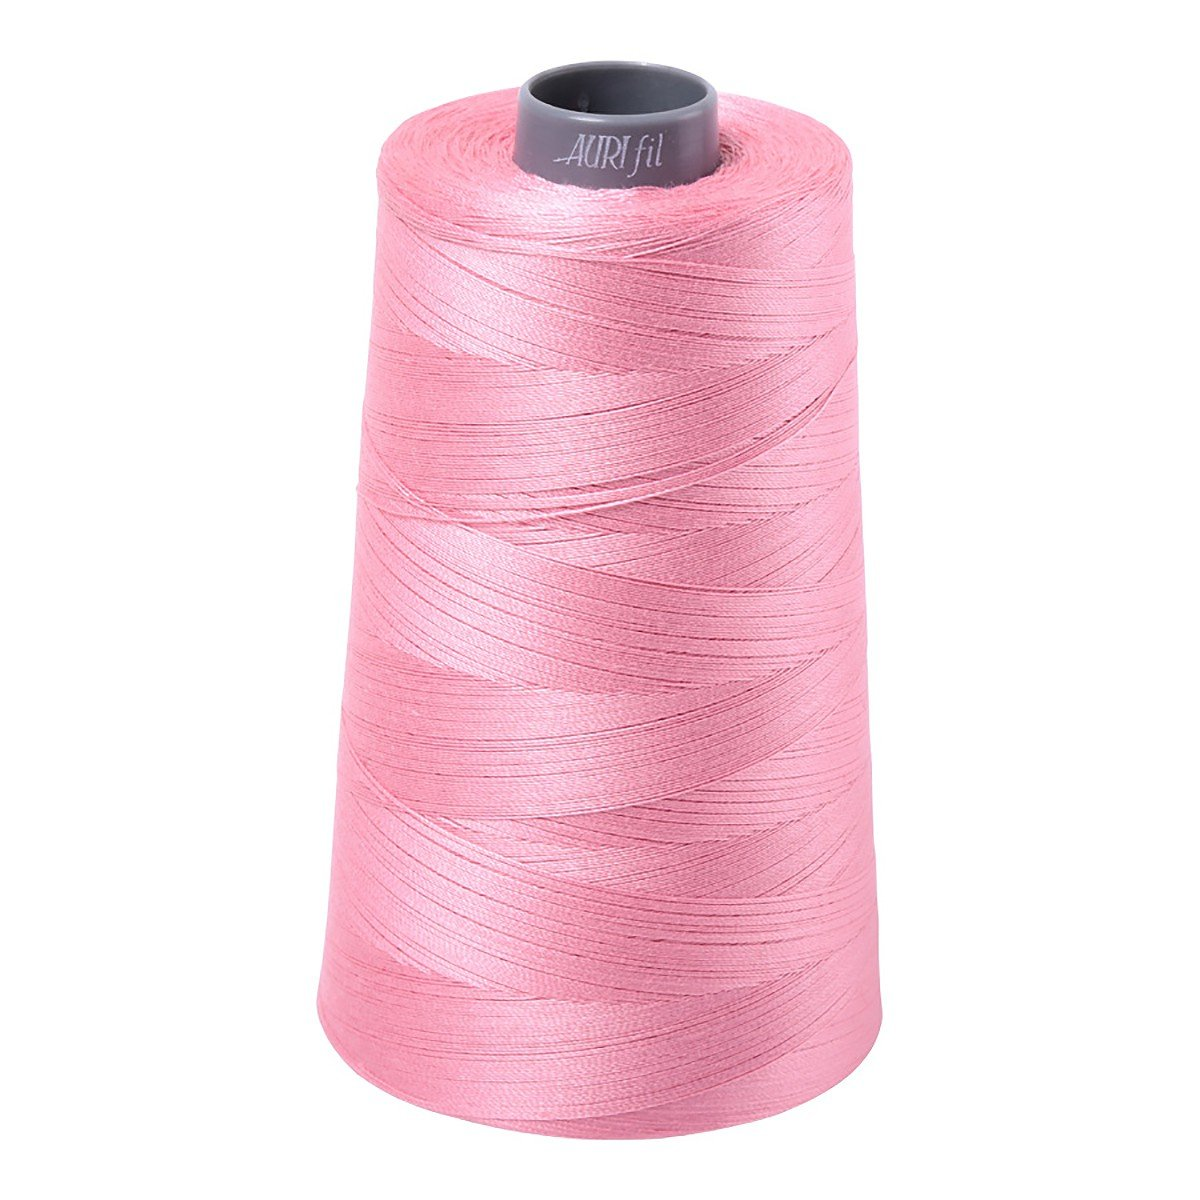 Mako (Cotton) Embroidery Thread 28wt 3609yds Bright Pink